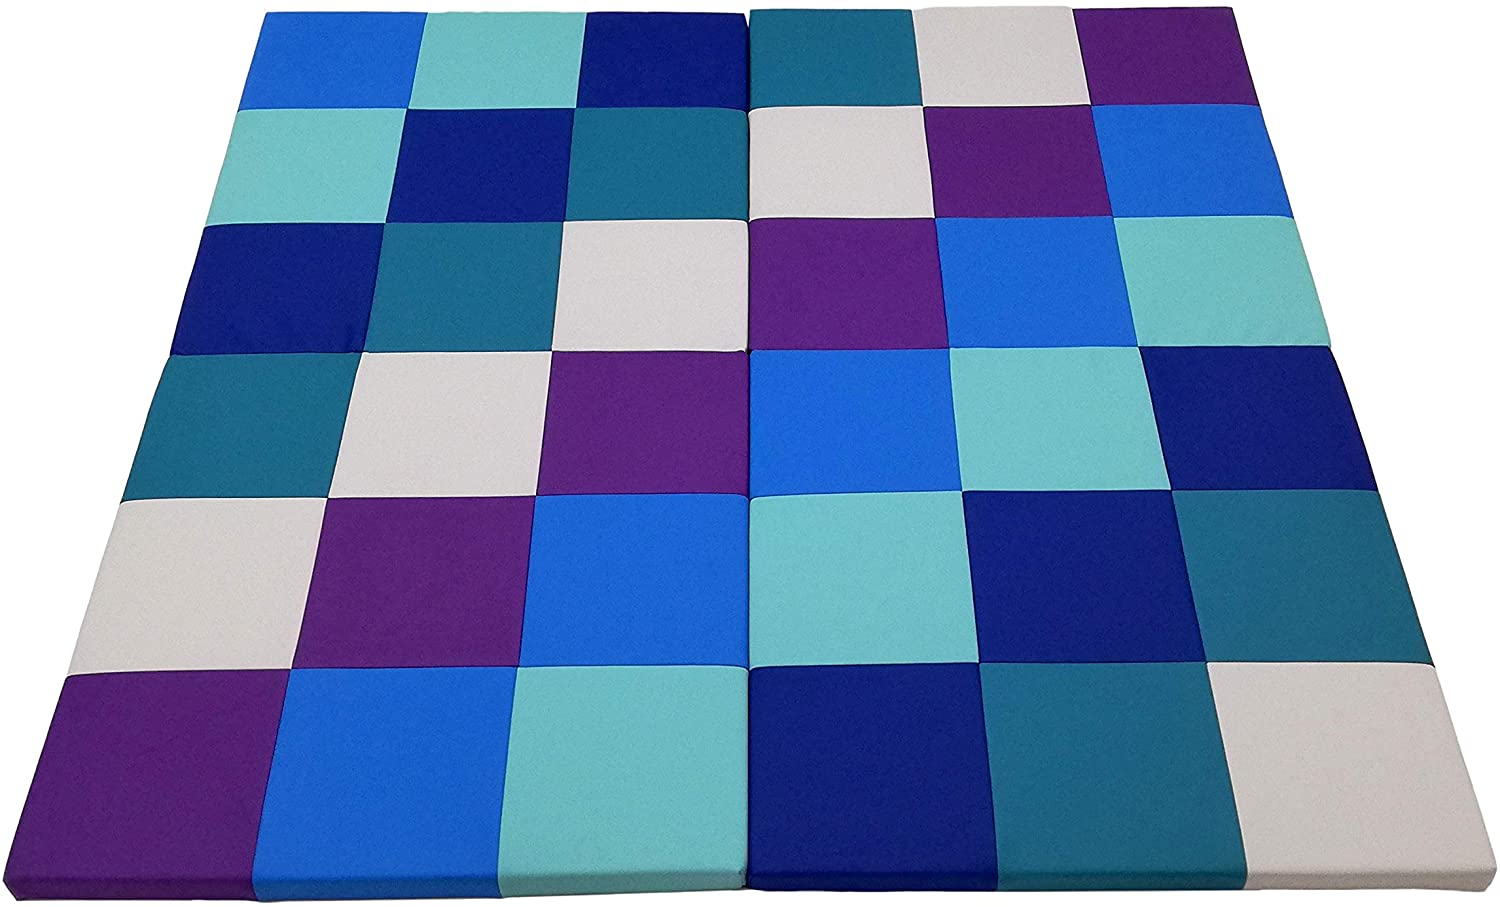 FDP Softscape Playtime Space Saver 4-Section Folding Activity Mat for Infants and Toddlers, Tummy Time for Babies, Soft Foam Colorful Play in Home, Daycare or Preschool - Contemporary/Purple